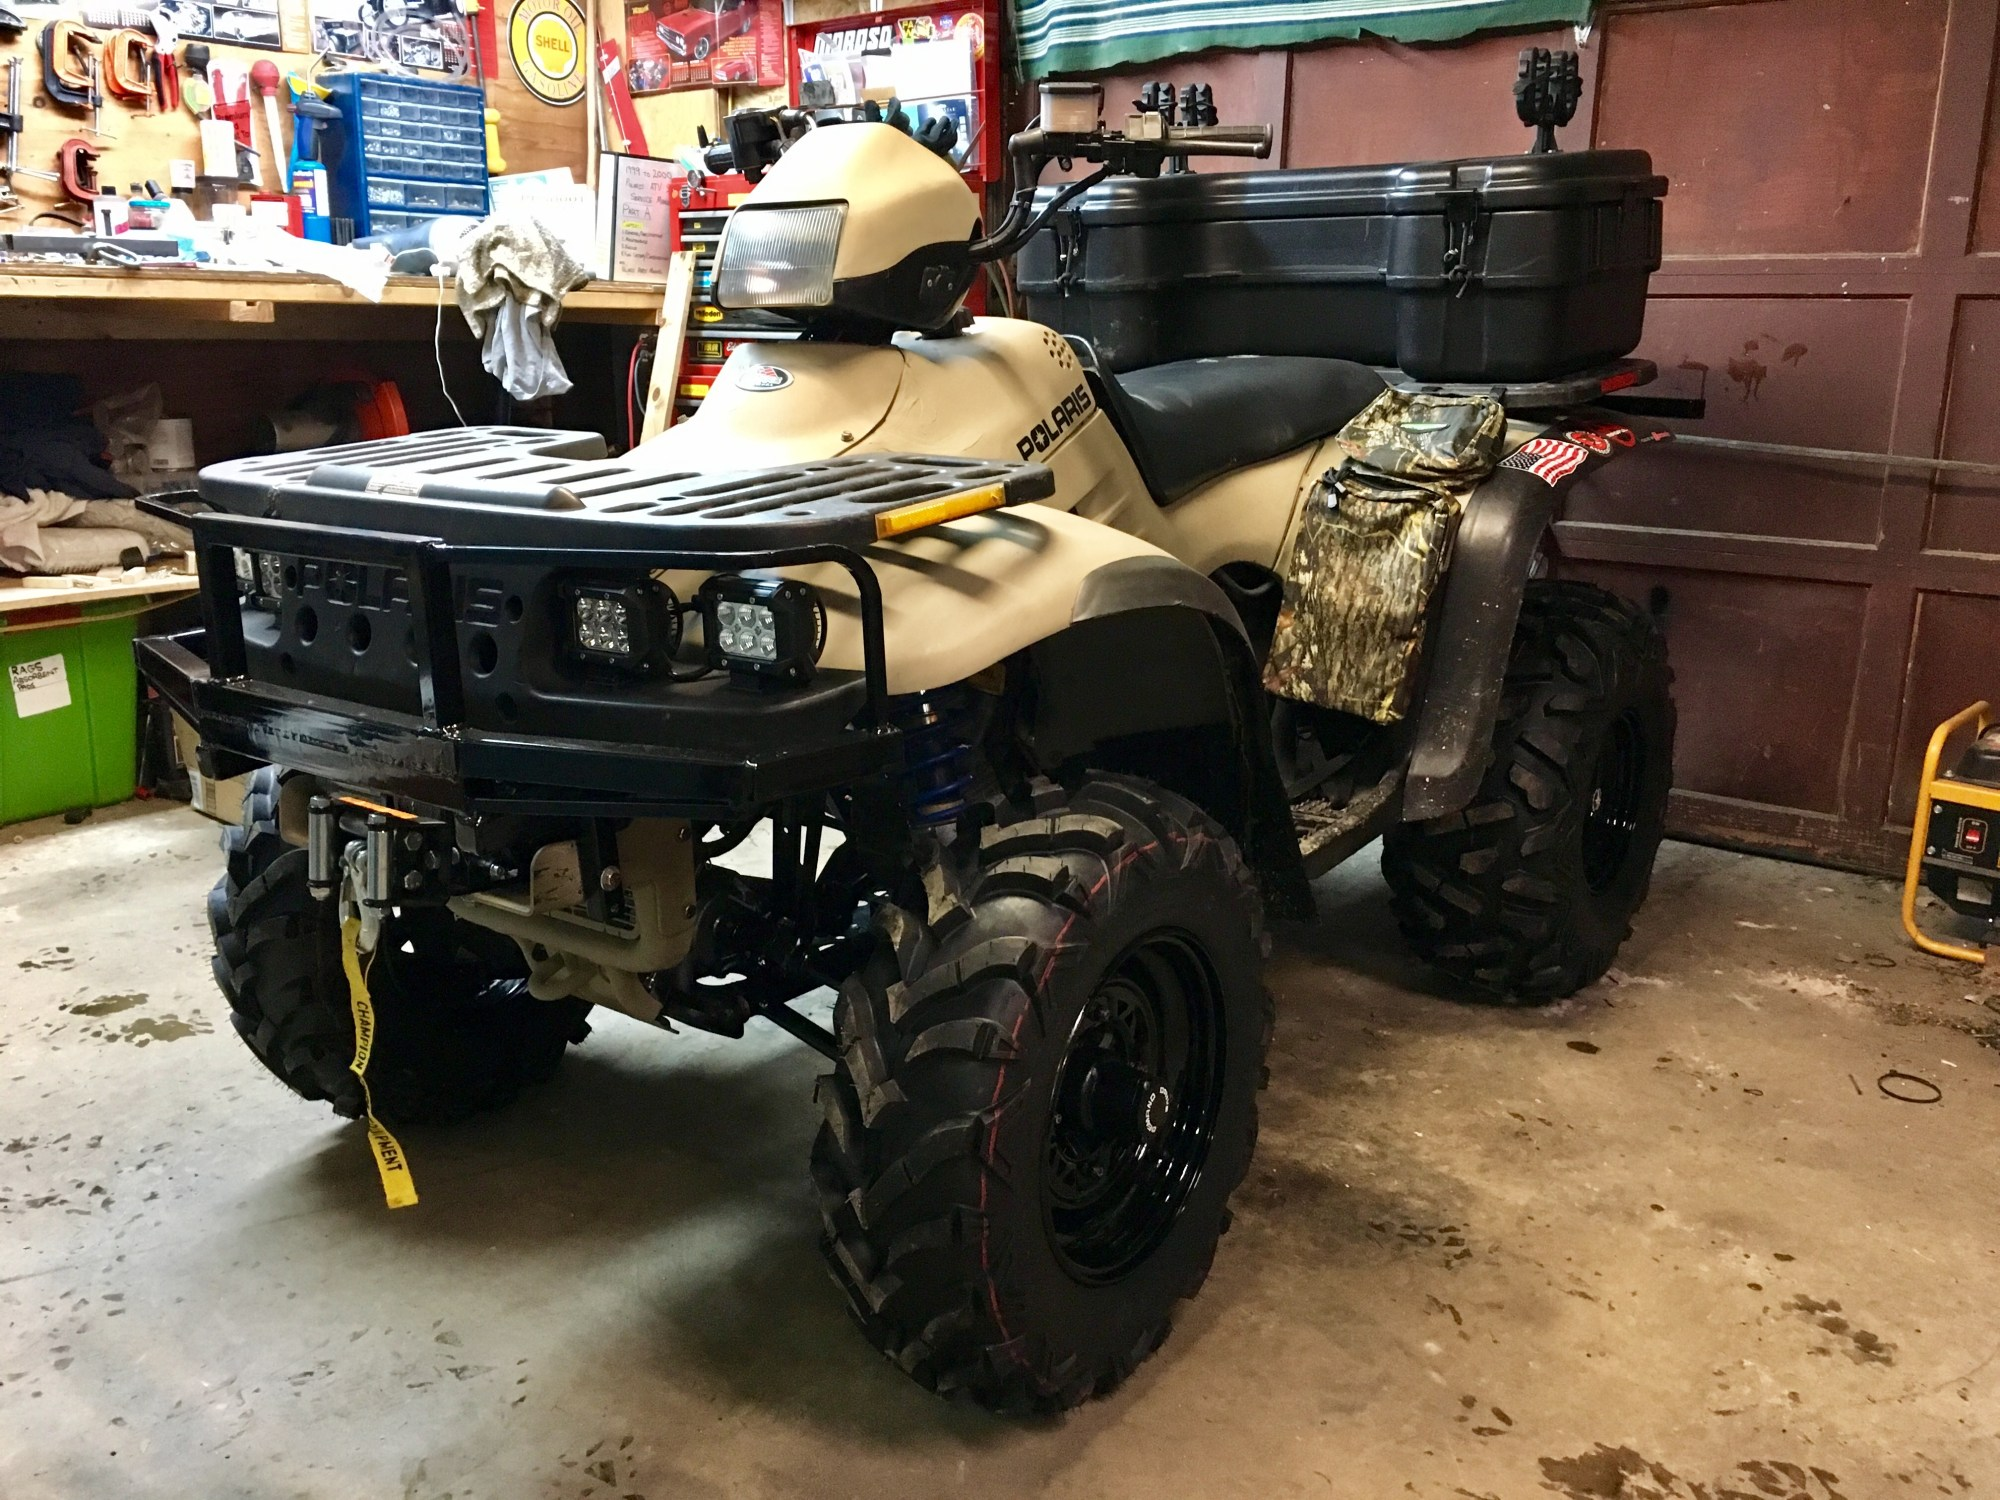 hight resolution of preview 2005 servicemanual 2005 500 polaris ranger 6x6 1999 manual documents pdfs download mv 2x a04rb42aa a04rd50aa listed hundreds containing wiring